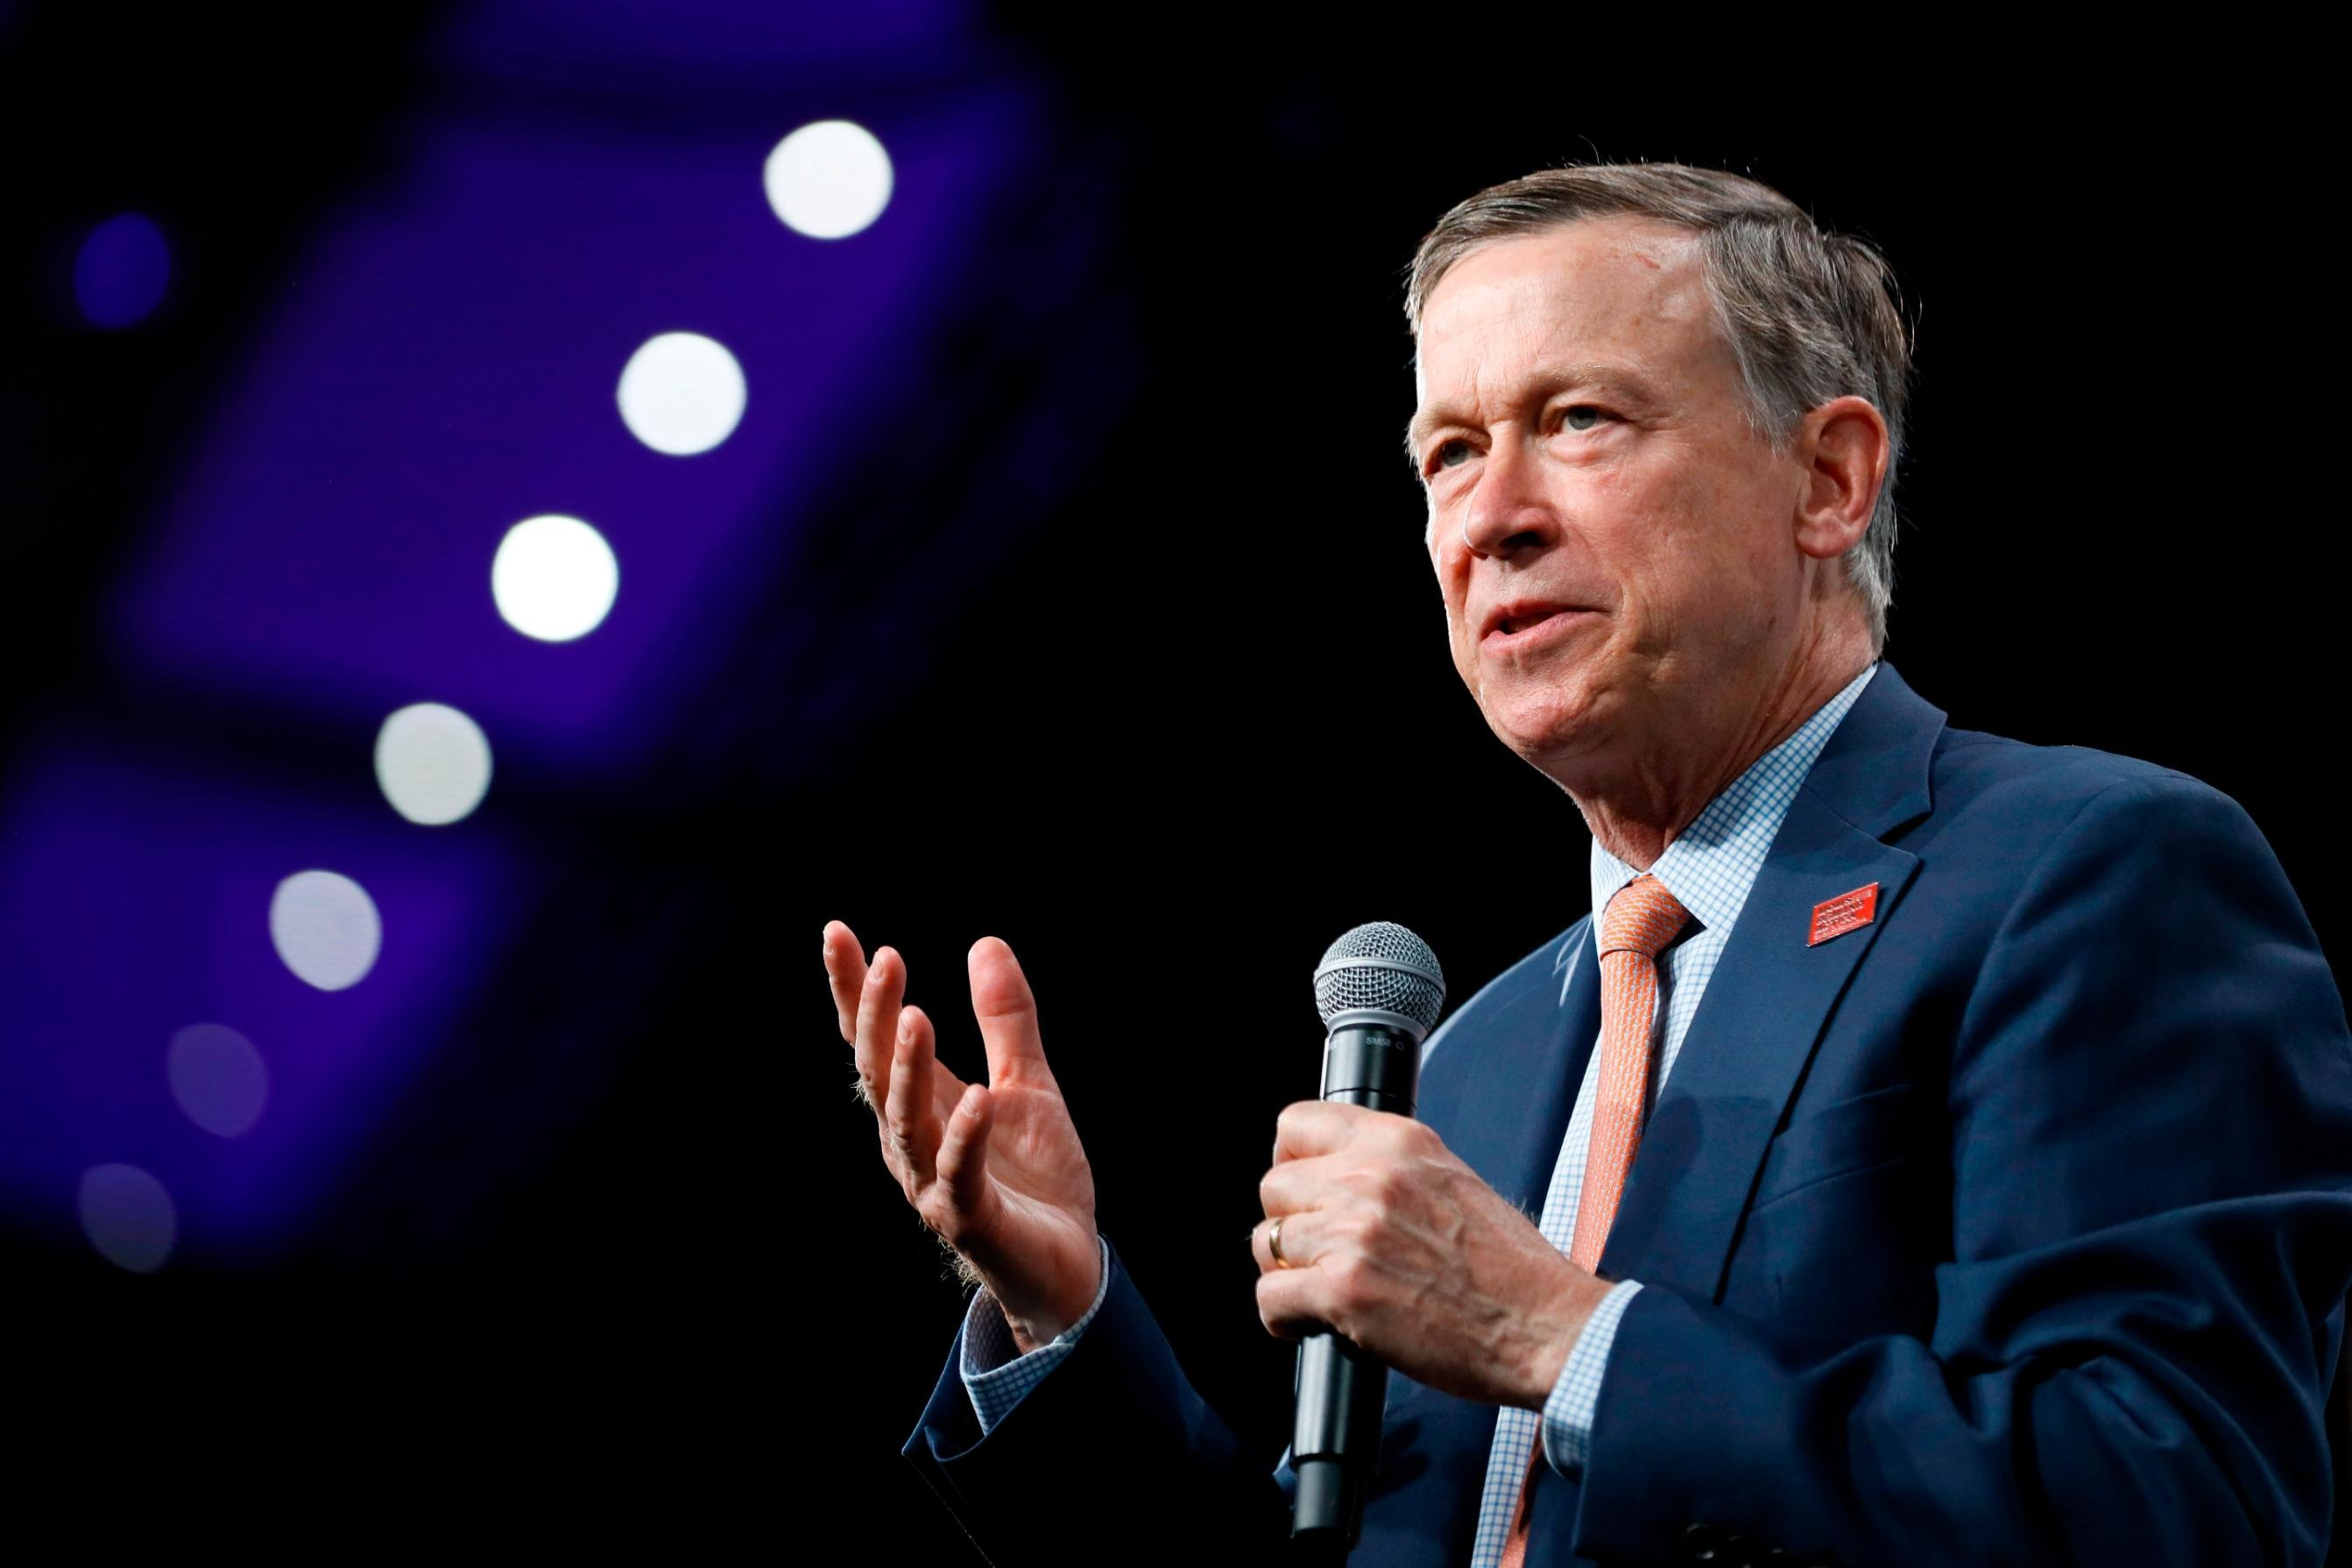 Former Colorado Gov. John Hickenlooper launches campaign for Senate